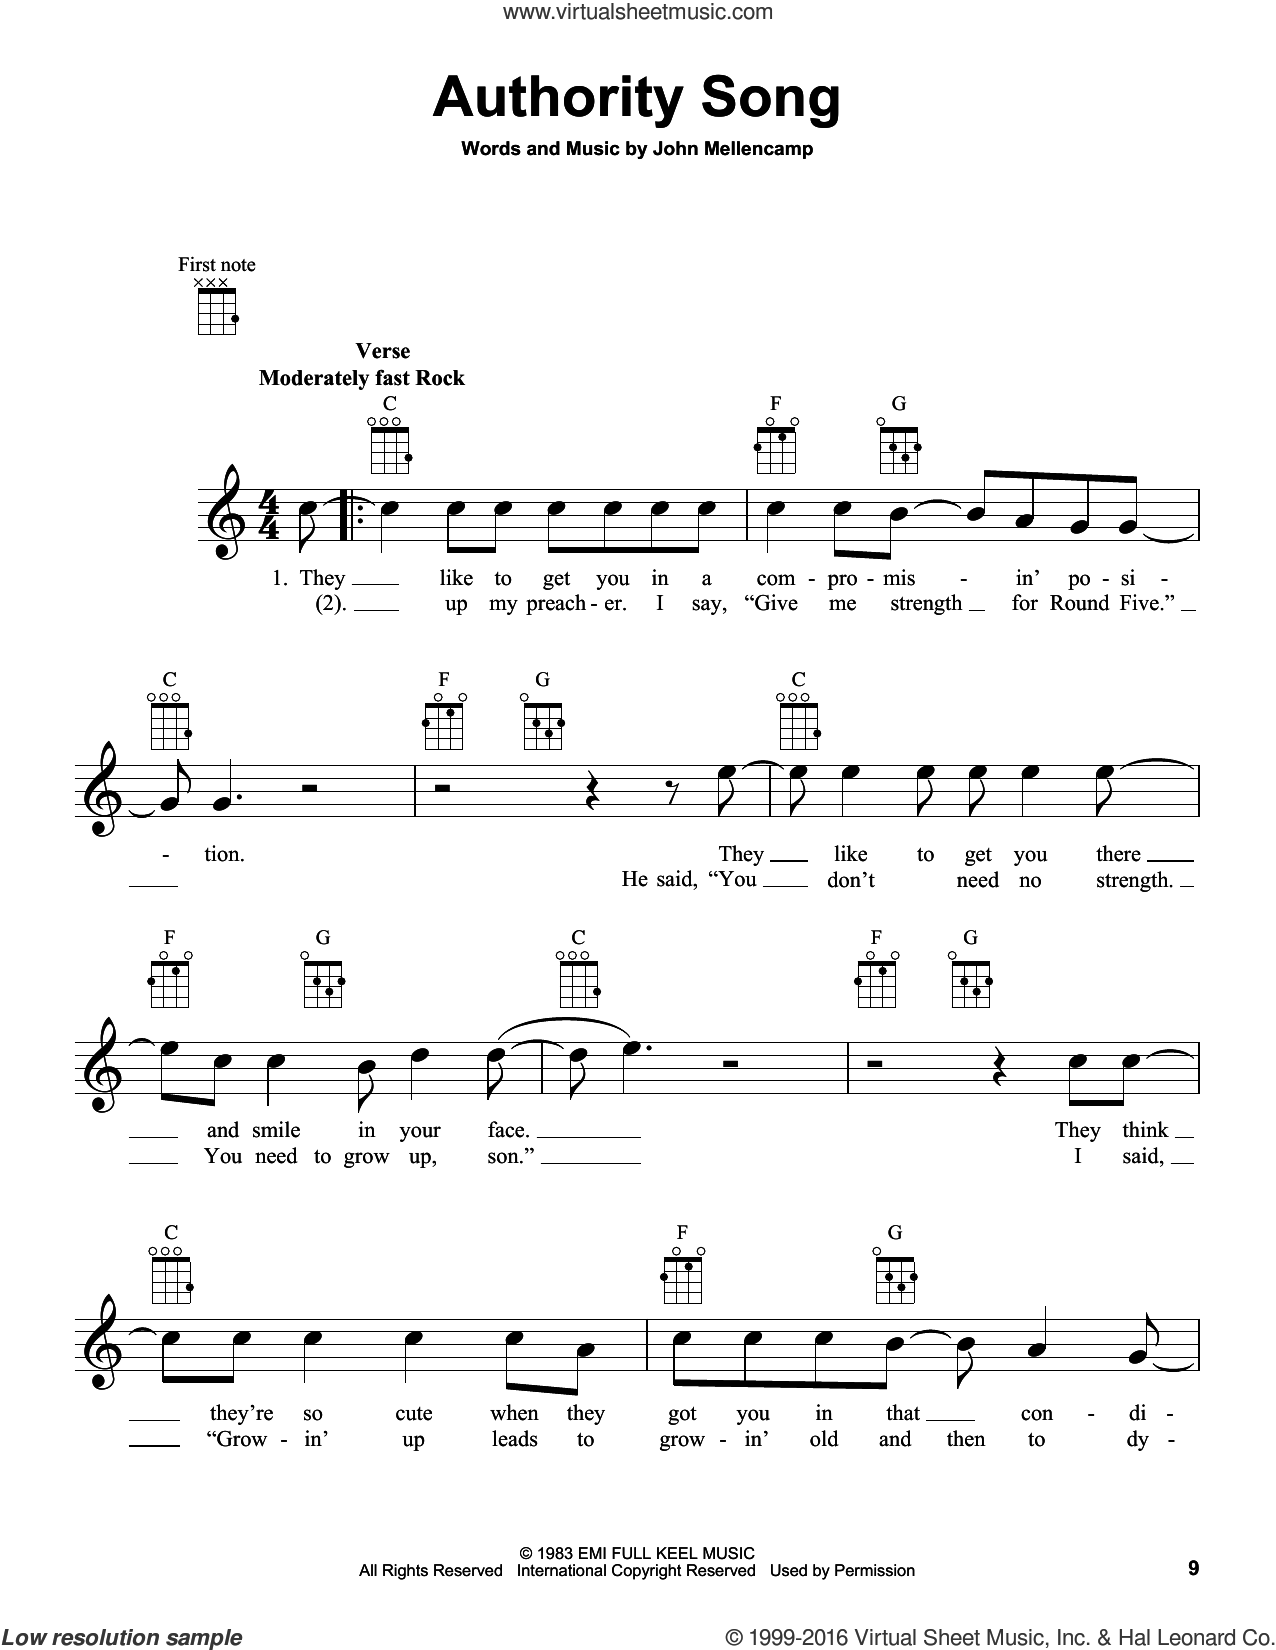 Authority Song sheet music for ukulele by John Mellencamp, intermediate skill level